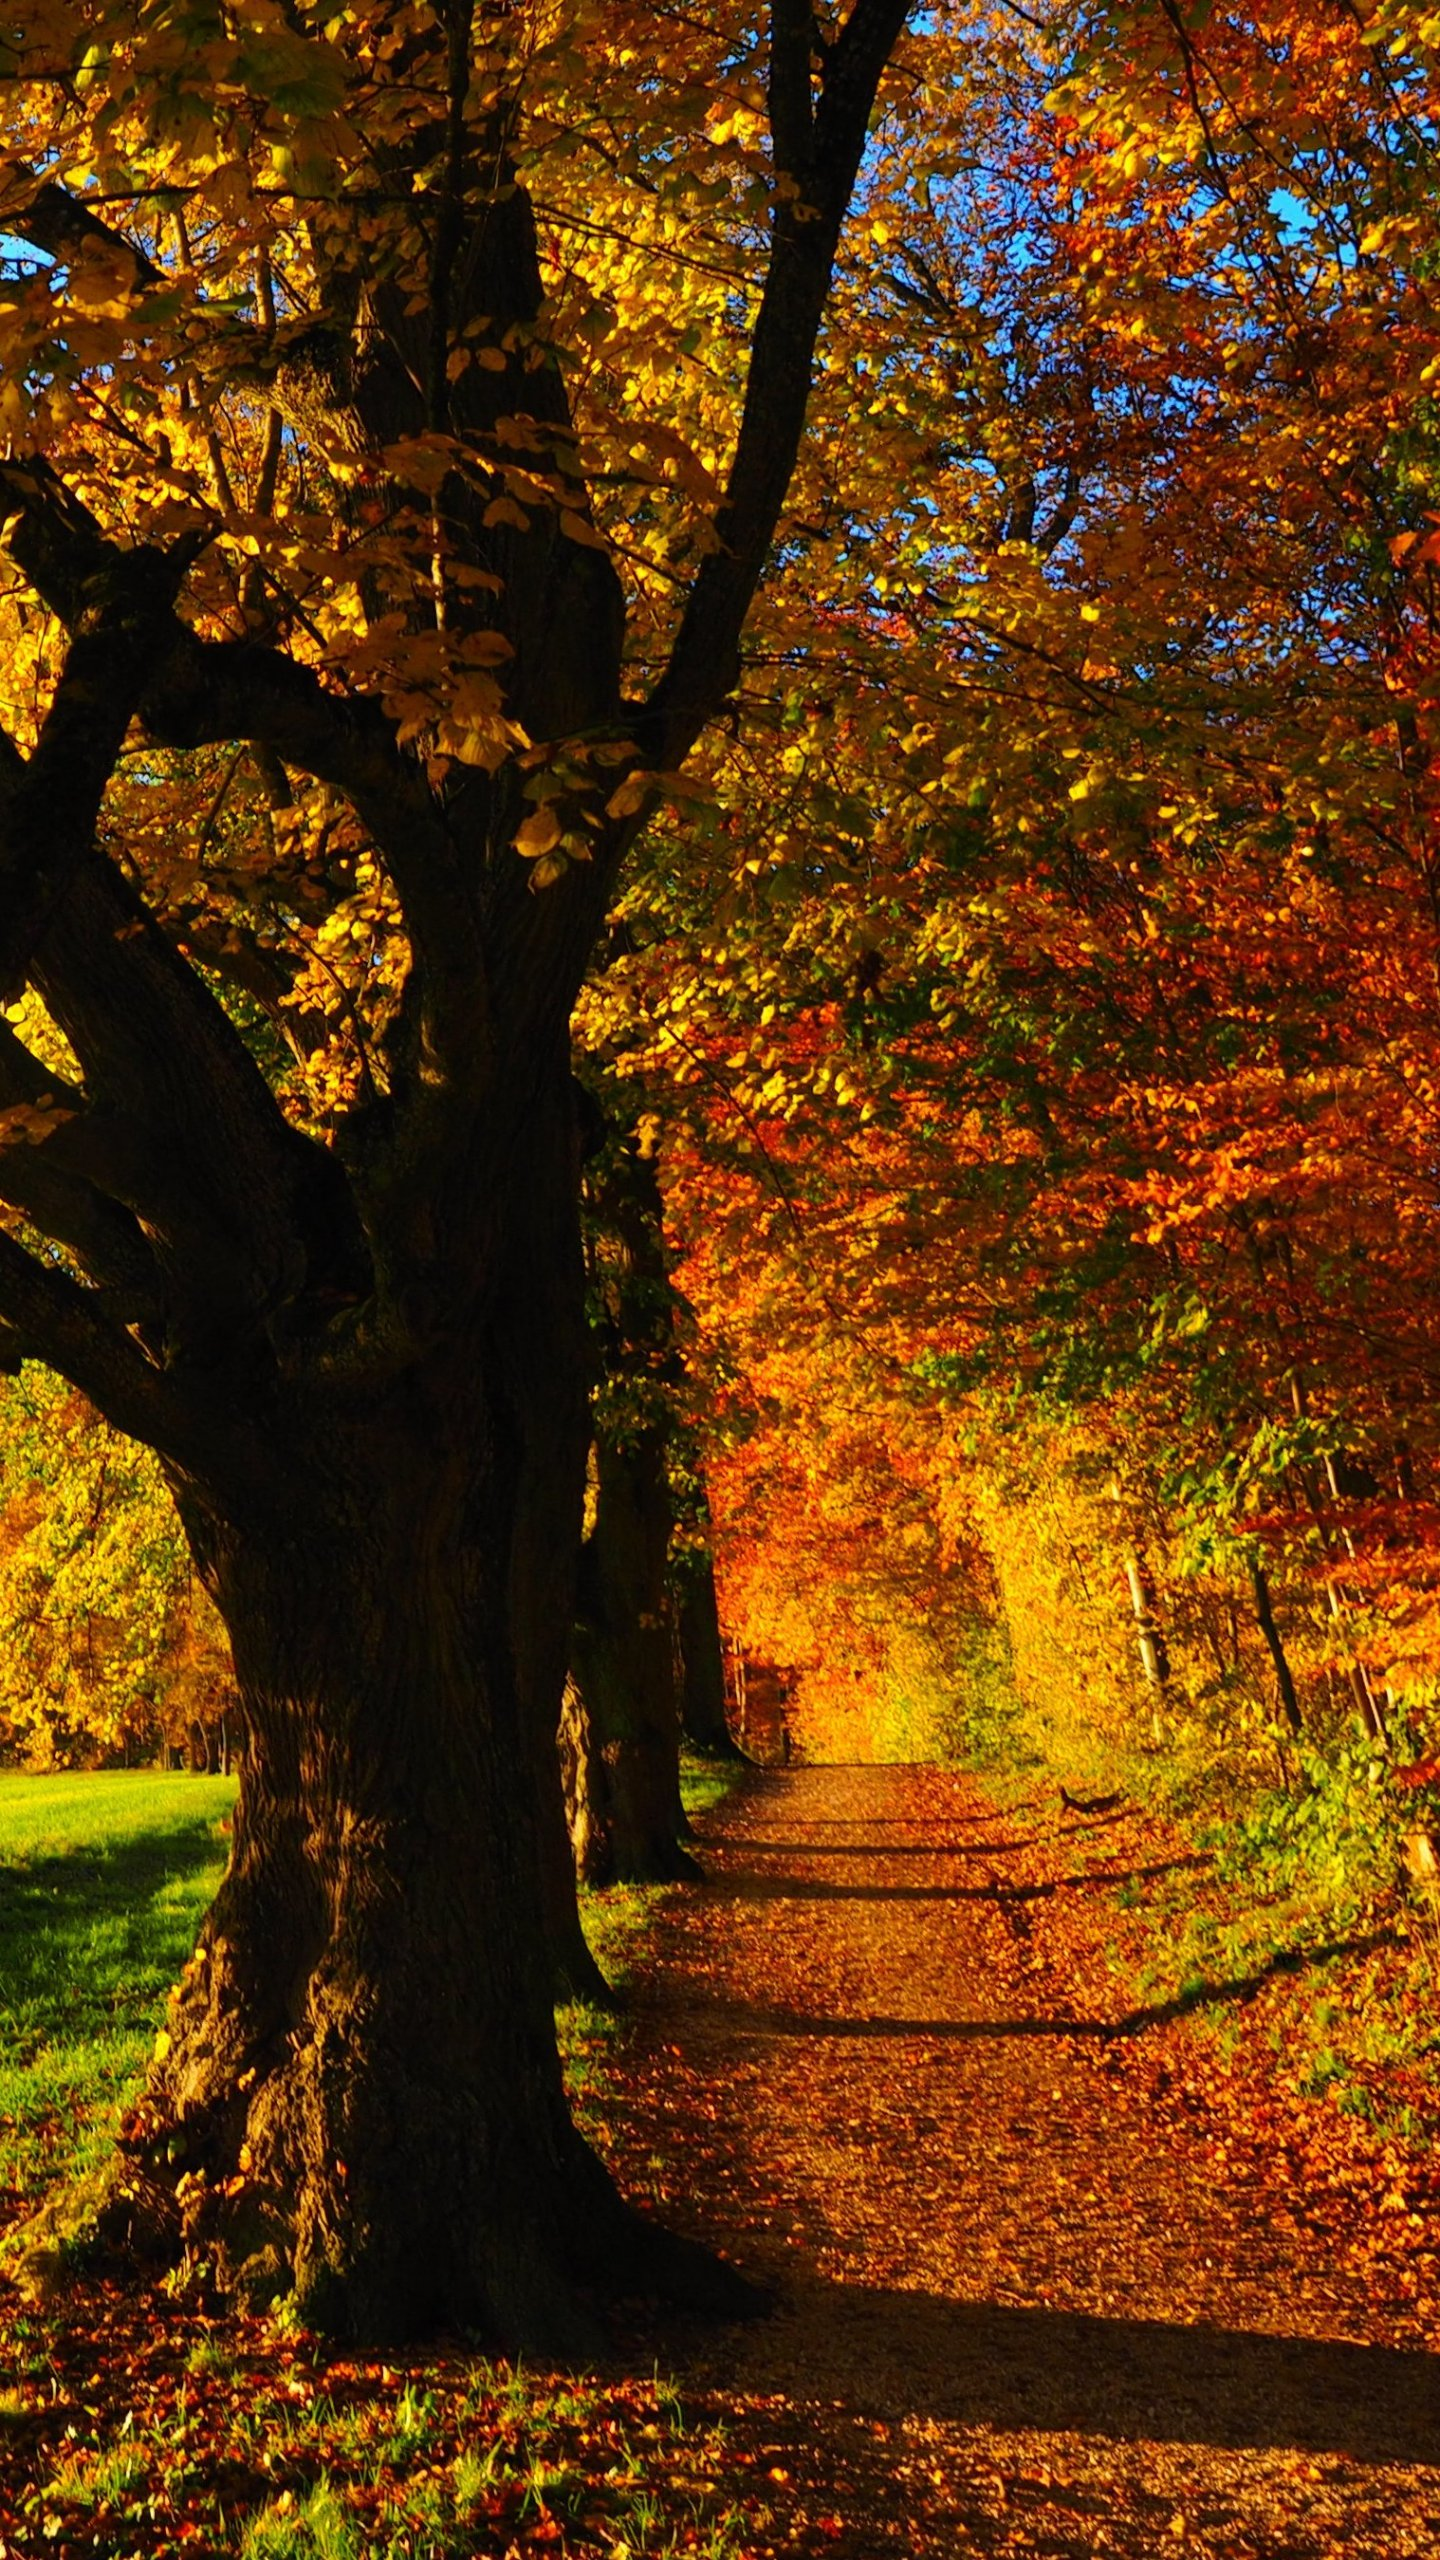 Fall Landscape Computer Wallpaper Fall Forest Wallpaper Iphone Android Amp Desktop Backgrounds